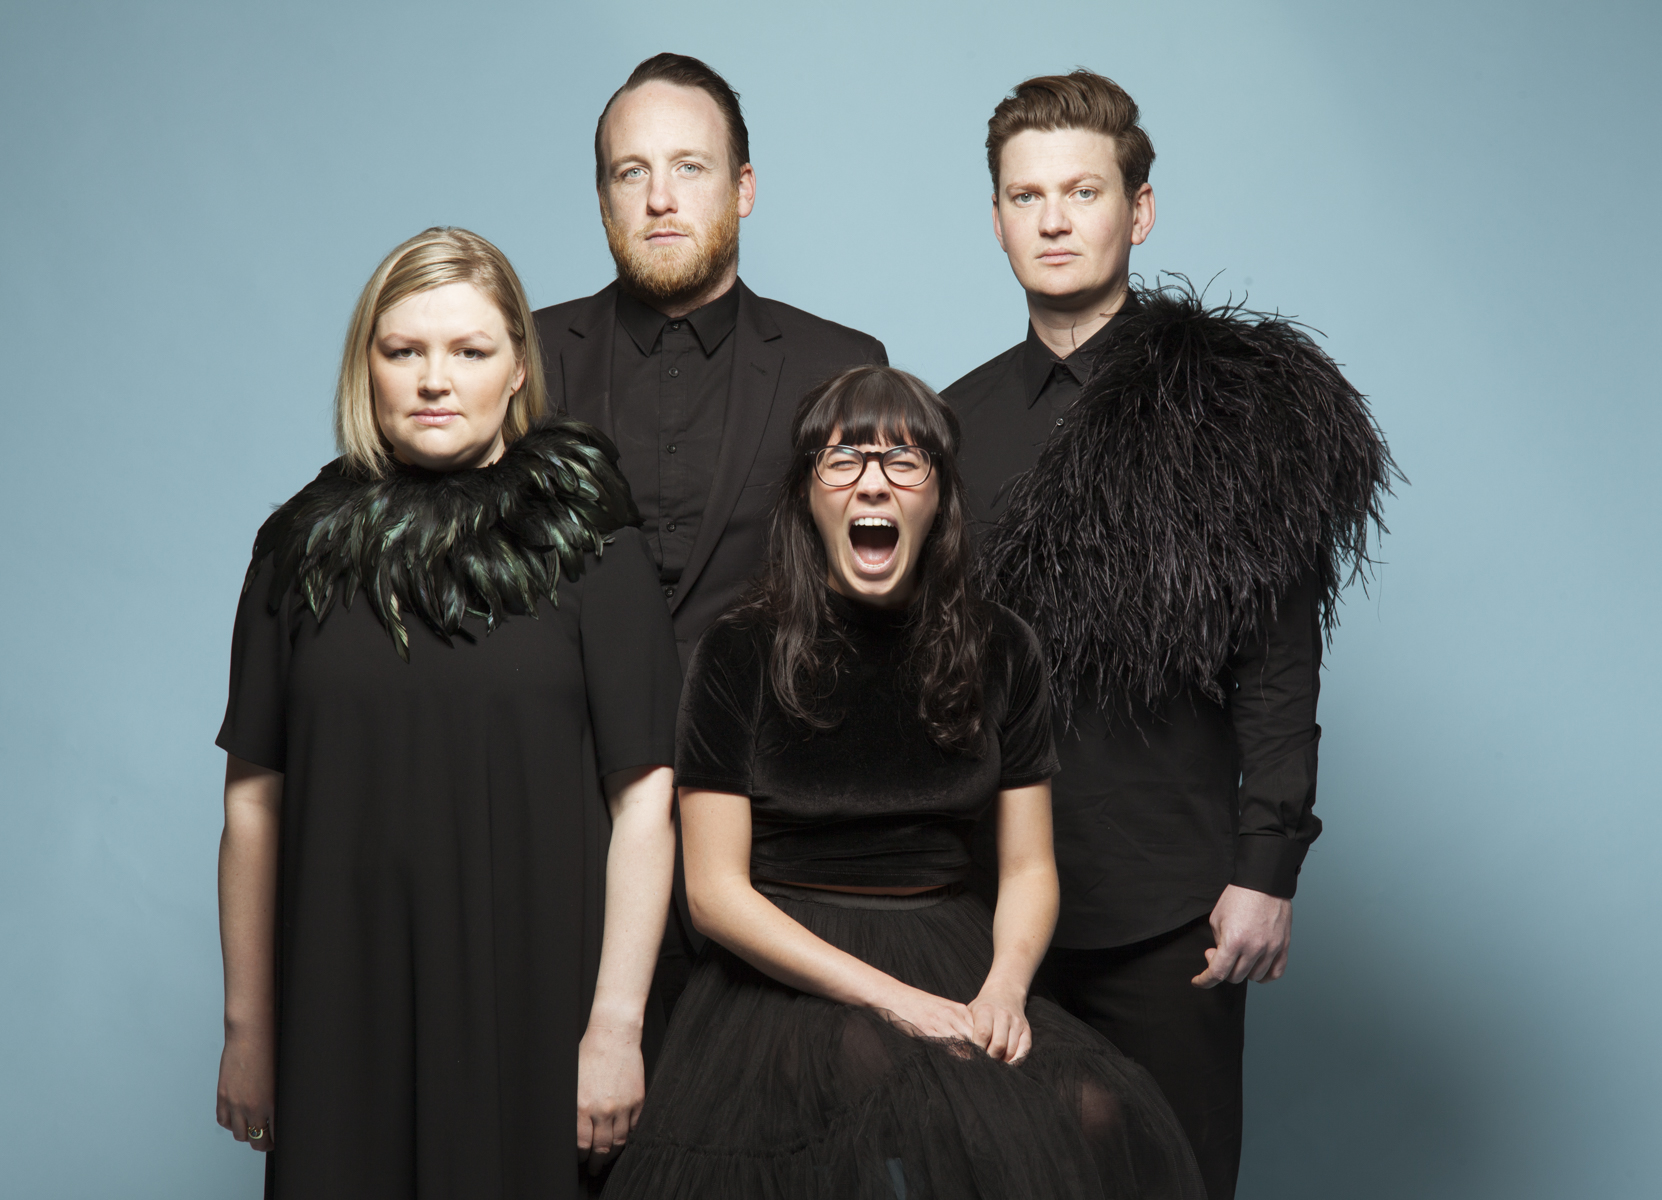 Four performers against a blue background, one is yelling